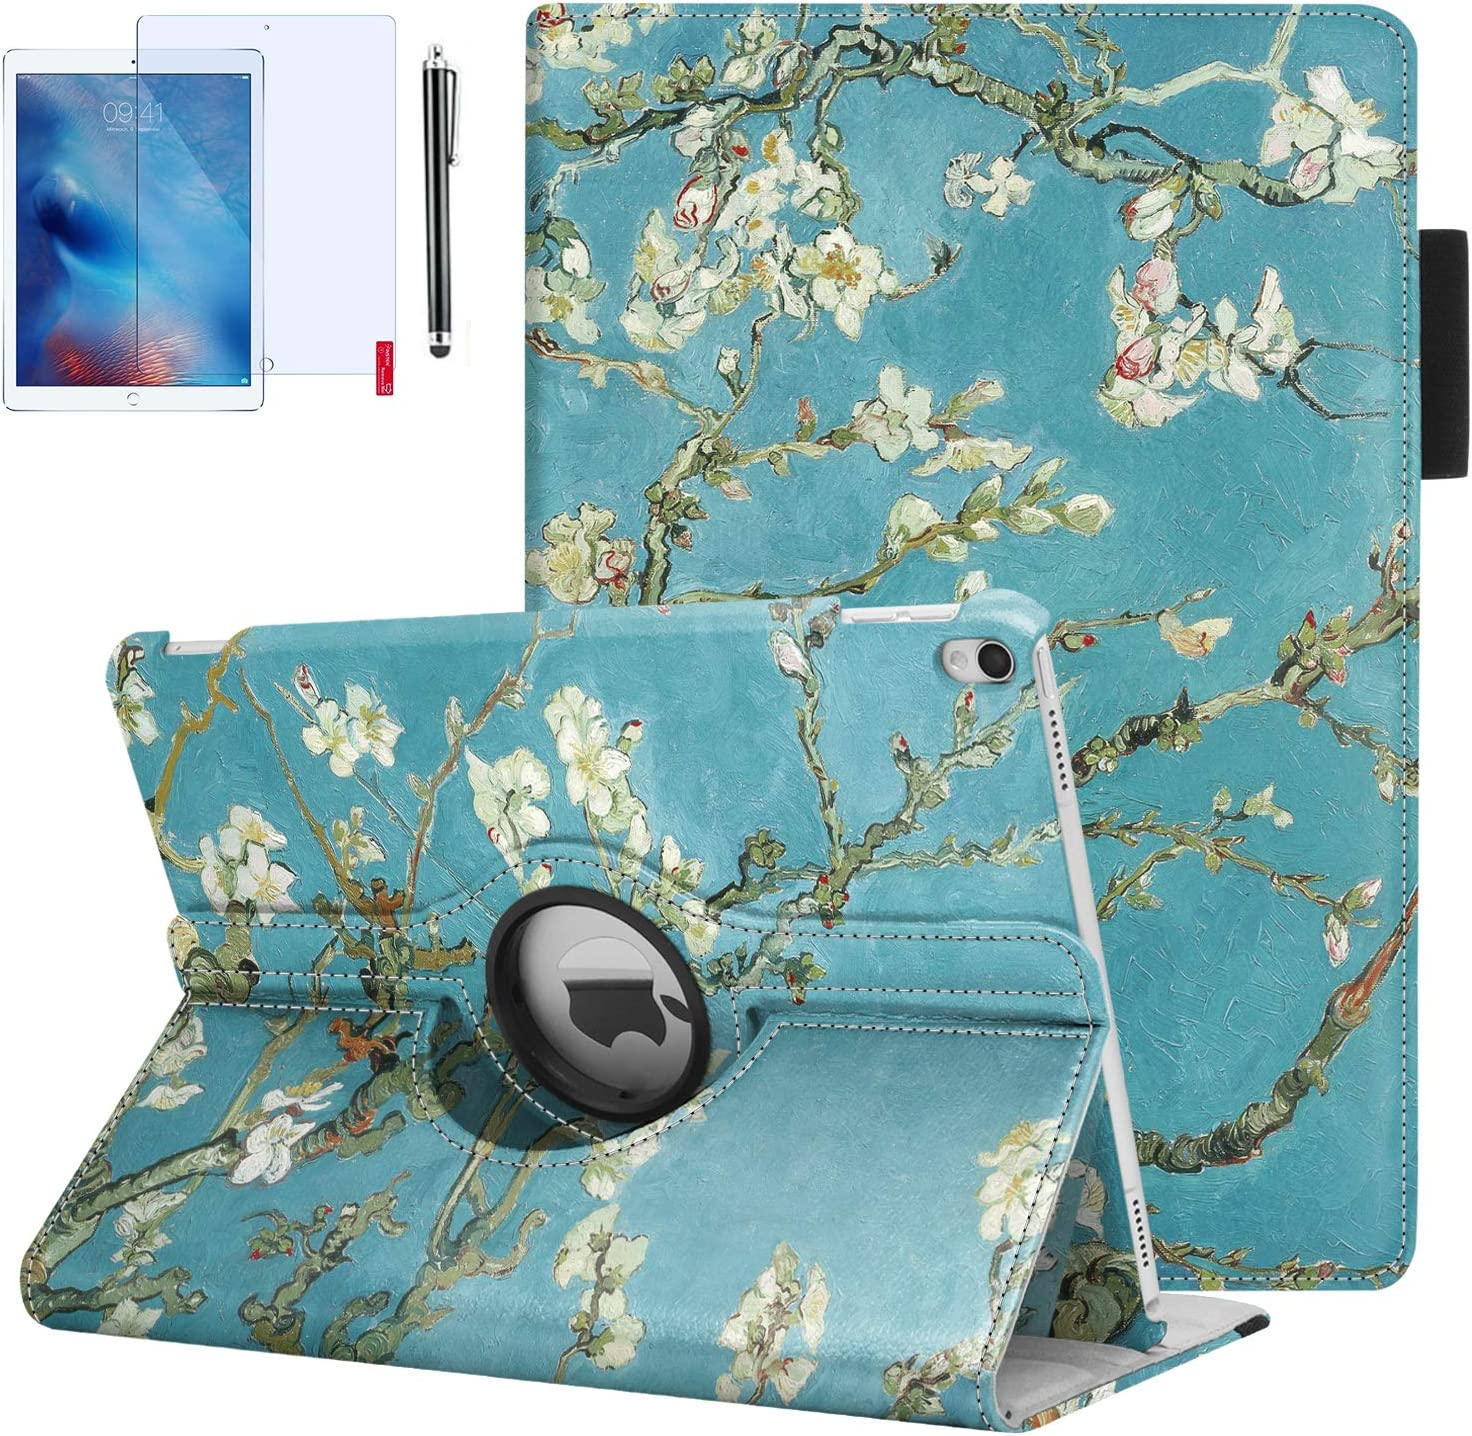 iPad Air 3 Case, iPad Pro 10.5 Case with Pencil Holder, 360 Degrees Rotating, Hand Strap, Auto Wake/Sleep for iPad Air 3rd Generation Case (Almond Blossoms)